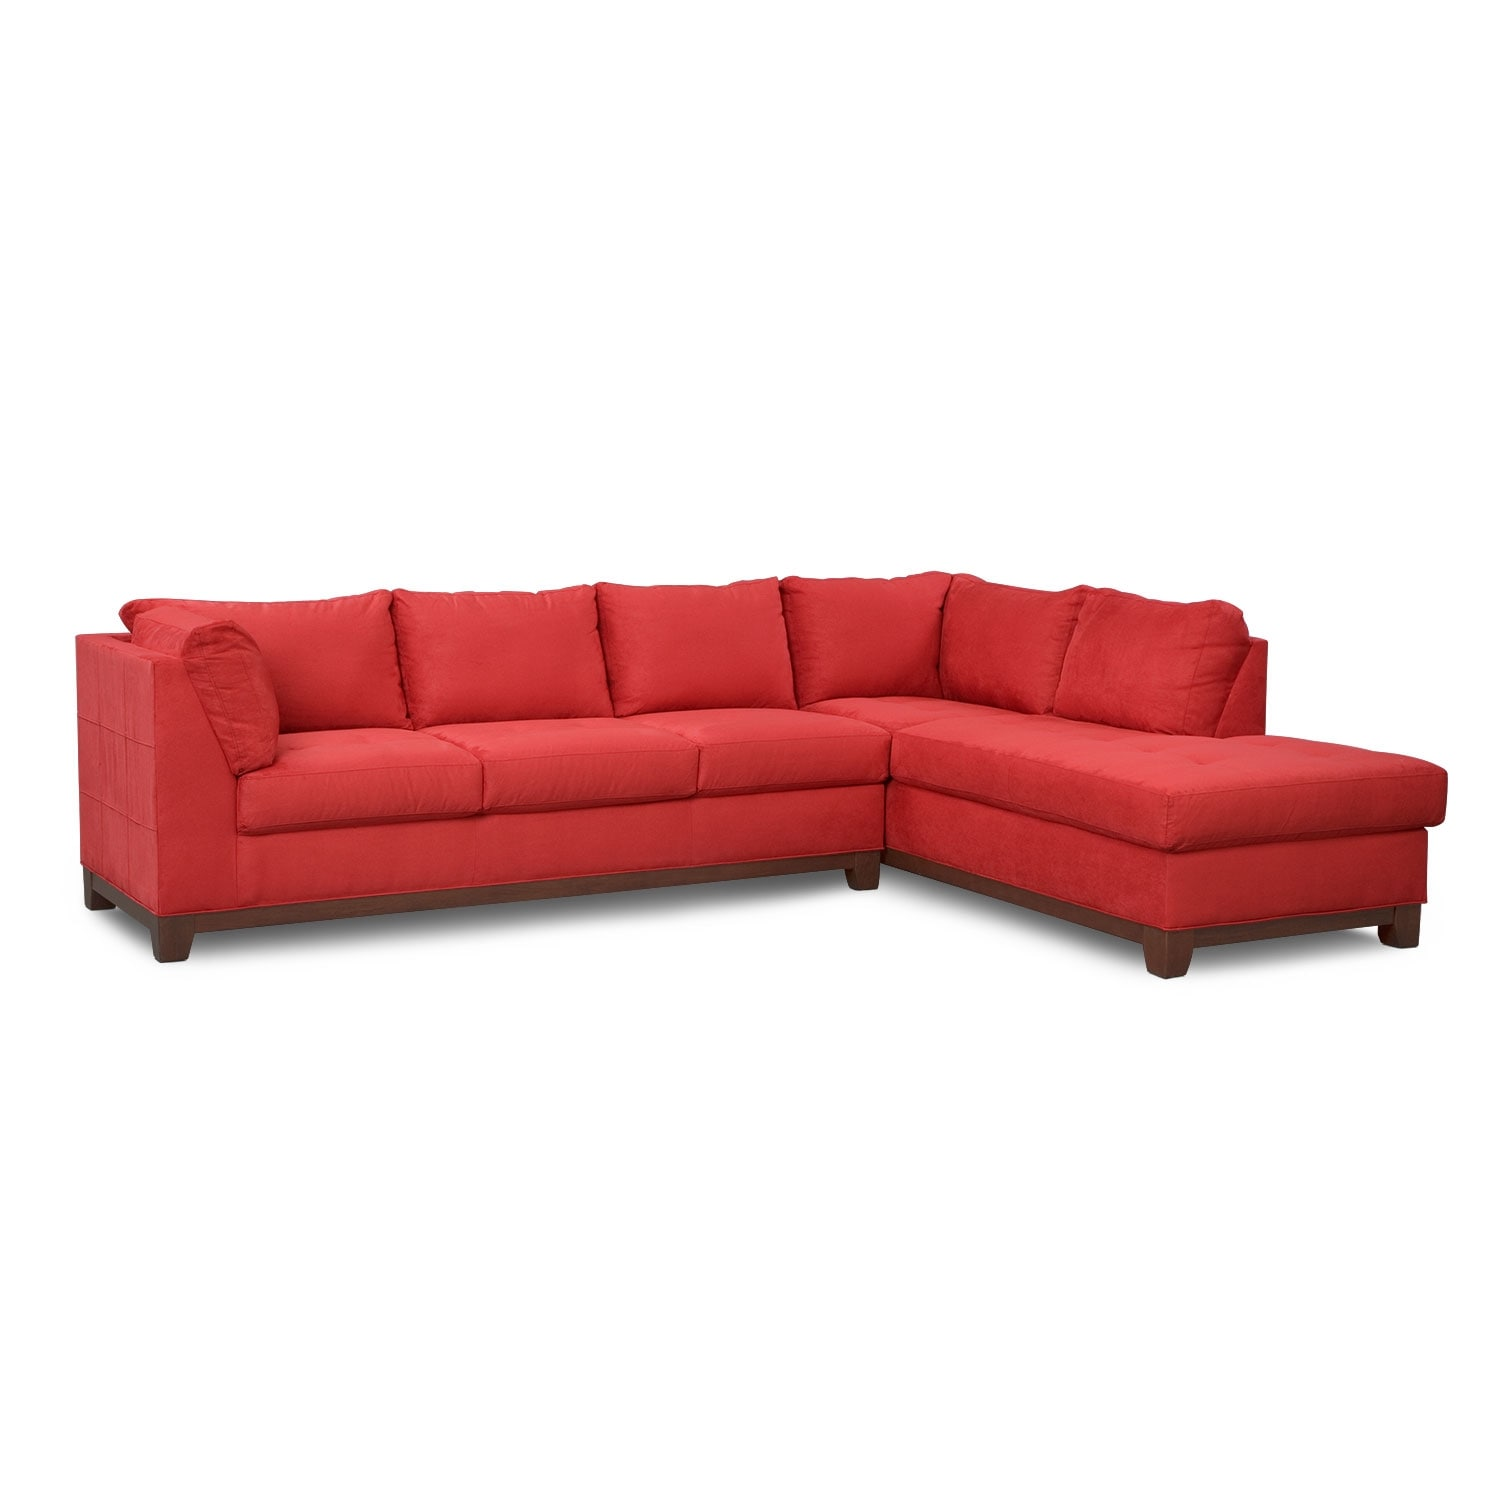 Soho 2 piece sectional with right facing chaise red for 2 piece sectional sofa with chaise